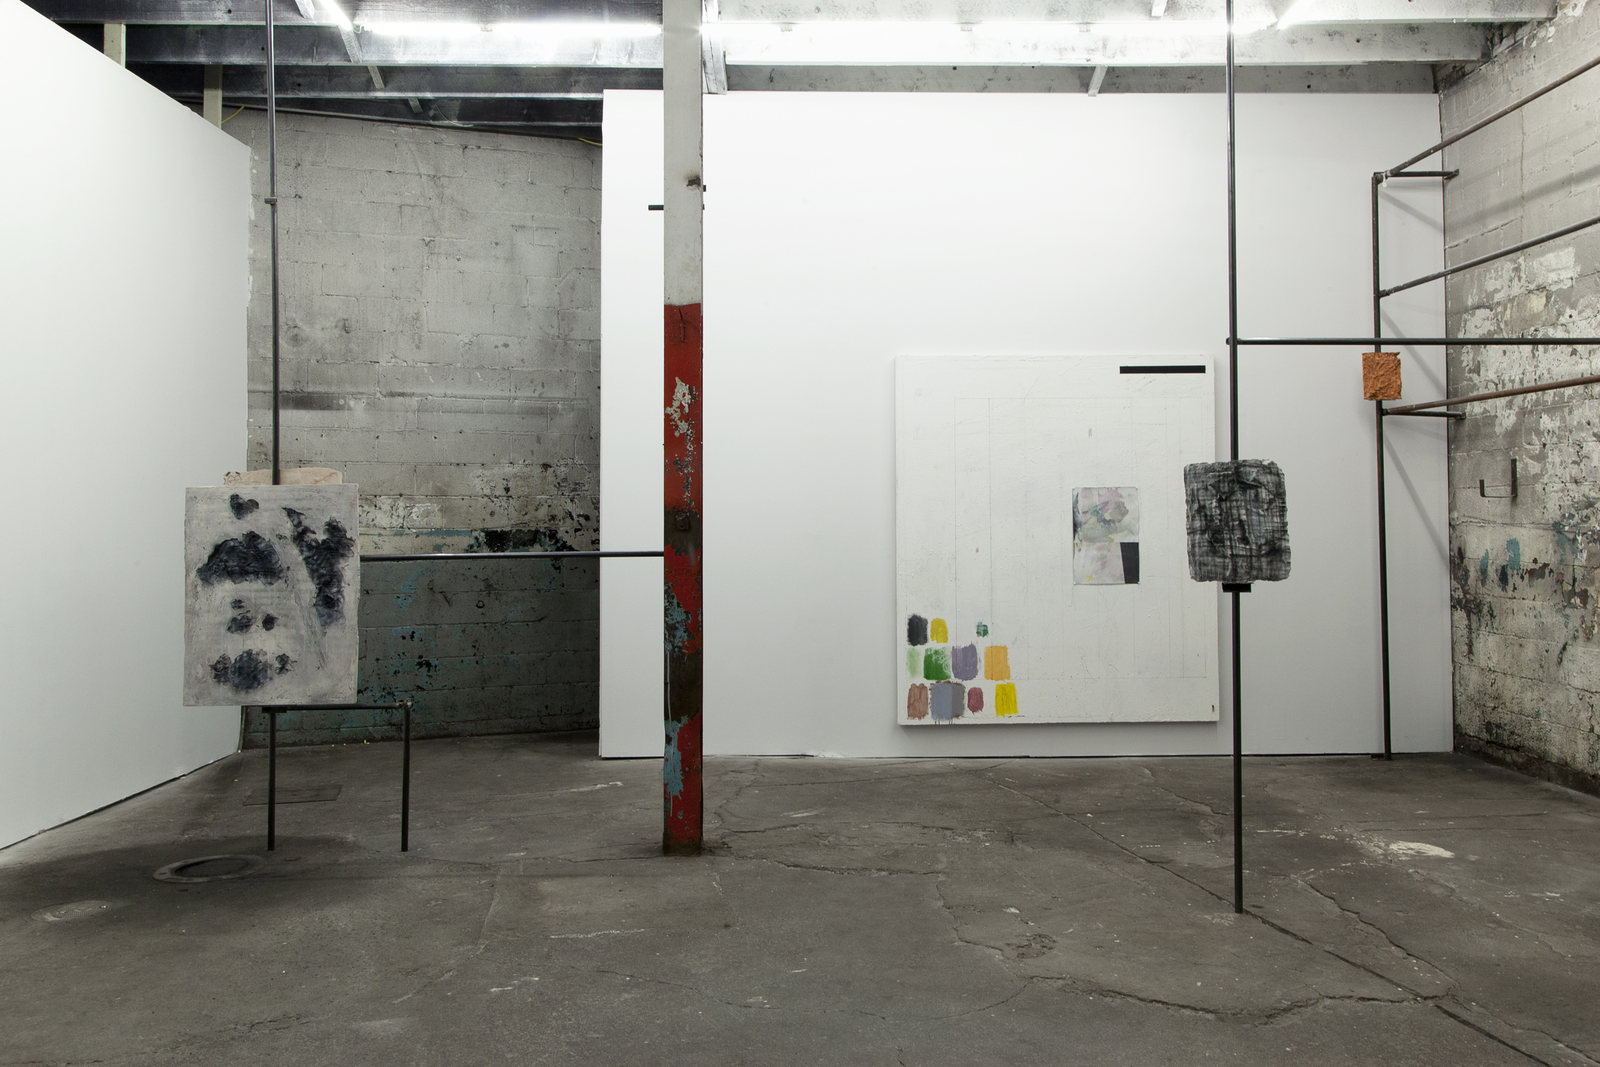 013_Installation View_7